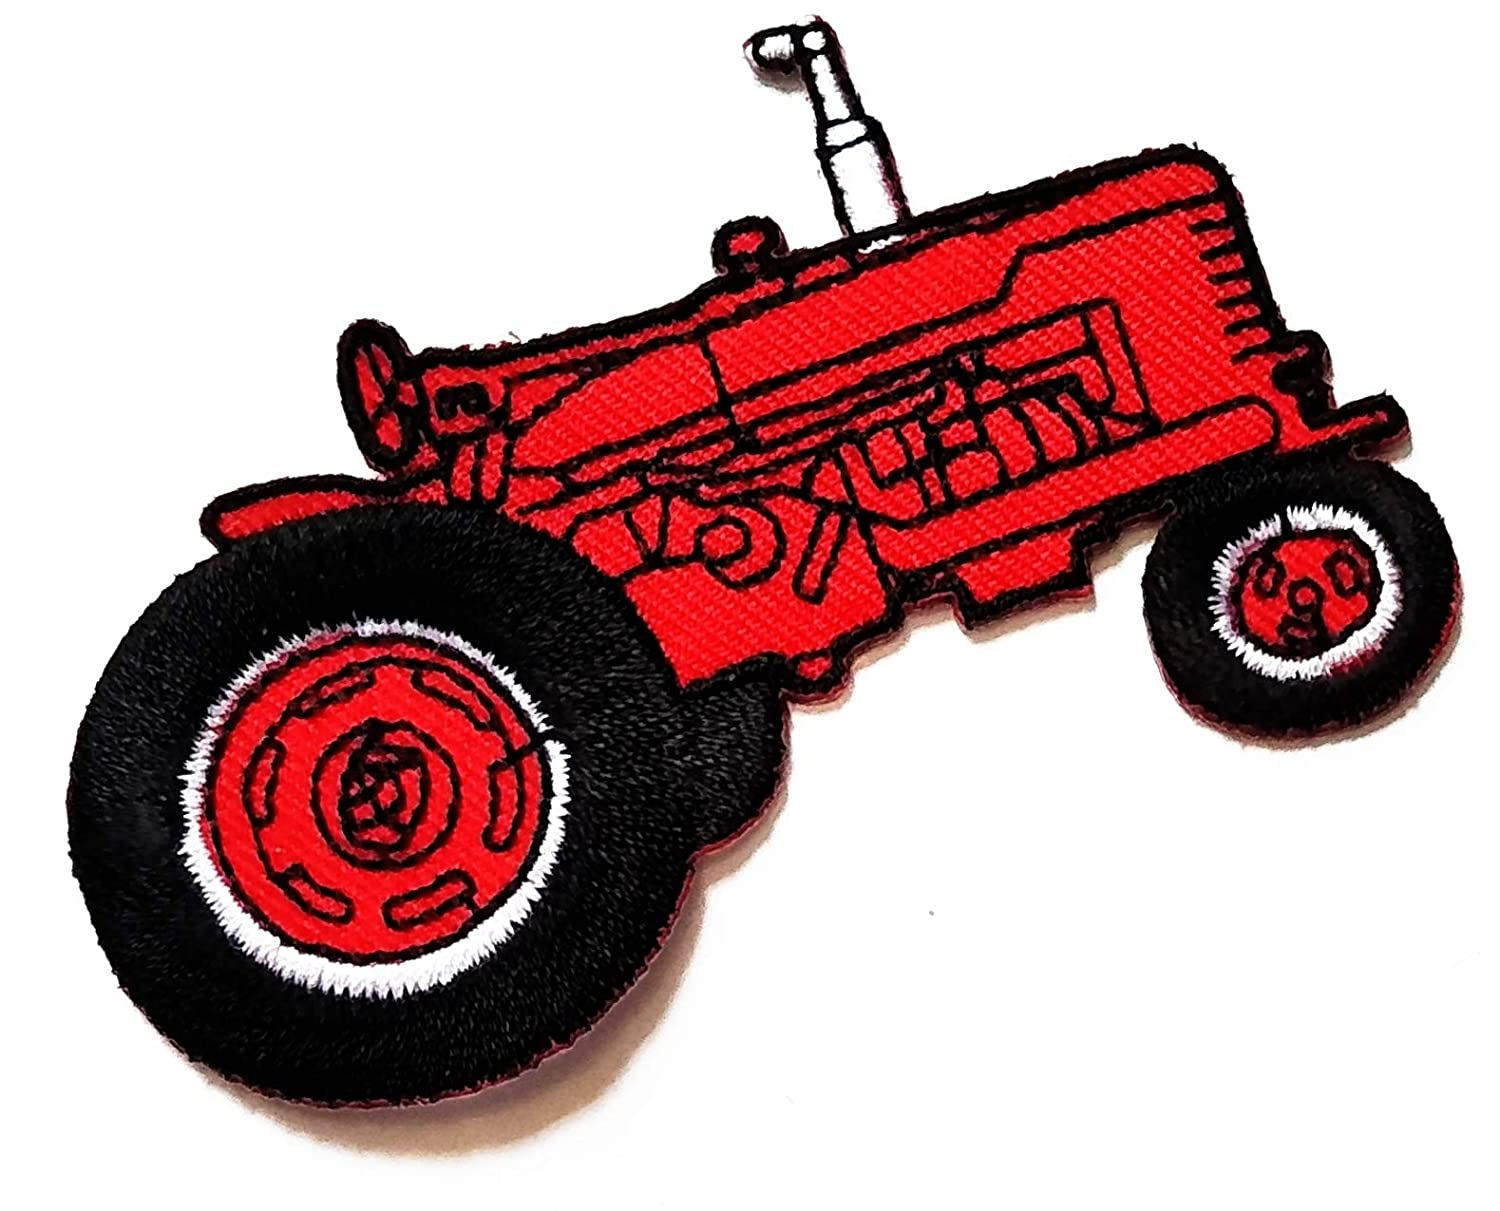 3.4'' X 2.4'' Red Car No roof Tractor Farm Tractor Cartoon Kids Logo Jacket t-Shirt Jeans Polo Patch Iron on Embroidered Logo Sign Badge Comics Cartoon Patch by Tour les jours Shop